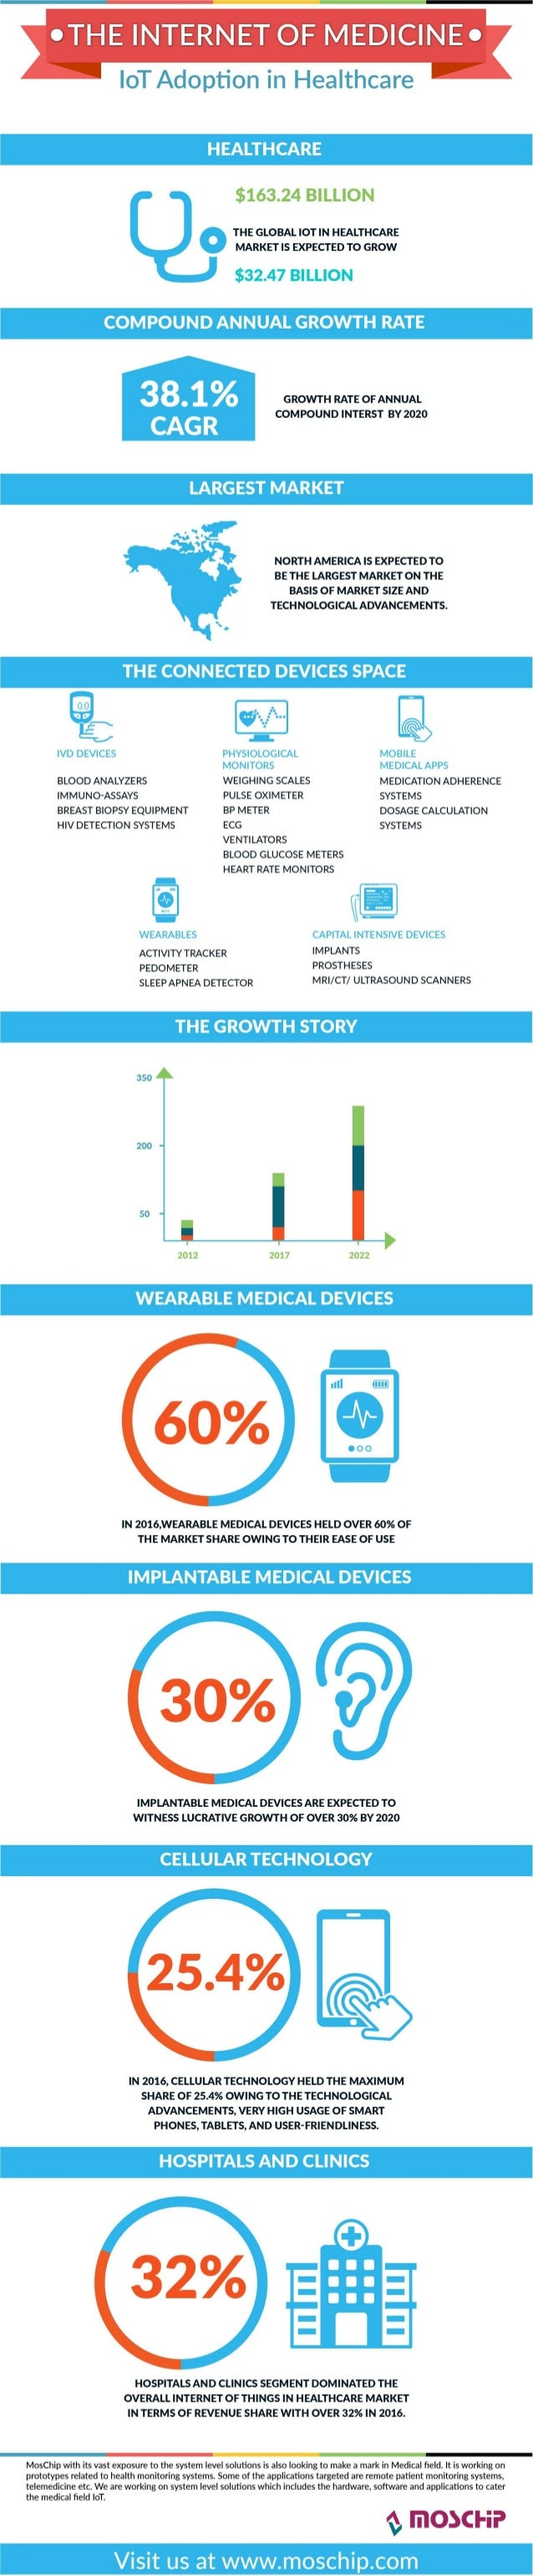 INFOGRAPHIC: The State of IoT in the Healthcare Industry